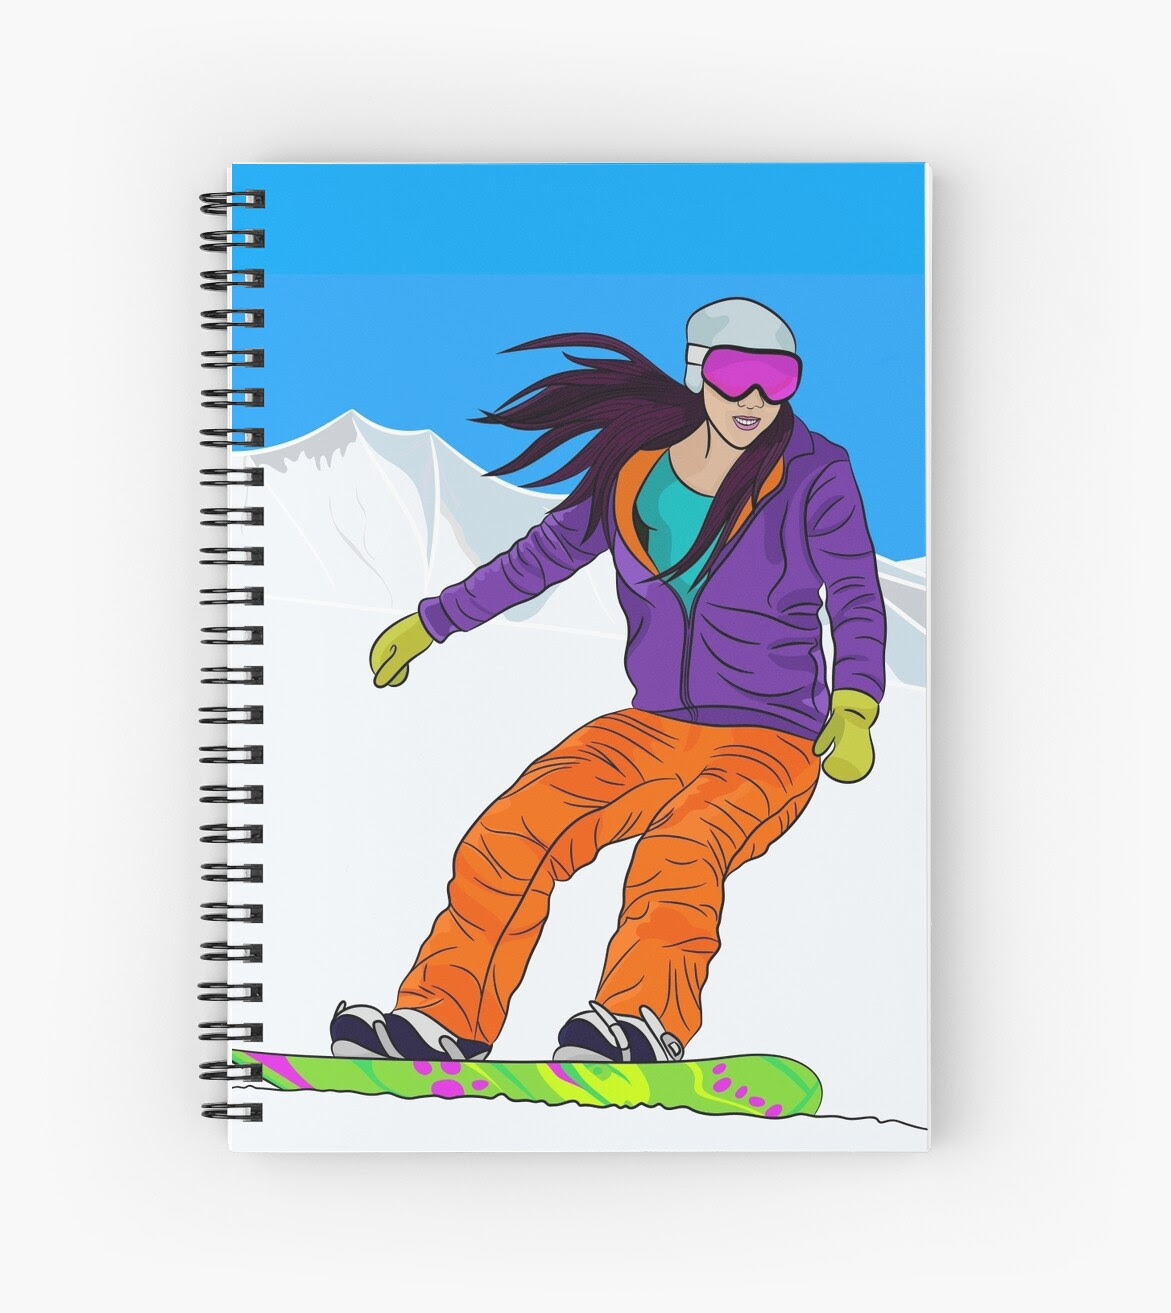 http://www.redbubble.com/people/torriphoto/works/23617012-snowboarder-girl-in-mountain?asc=u&p=spiral-notebook&rel=carousel